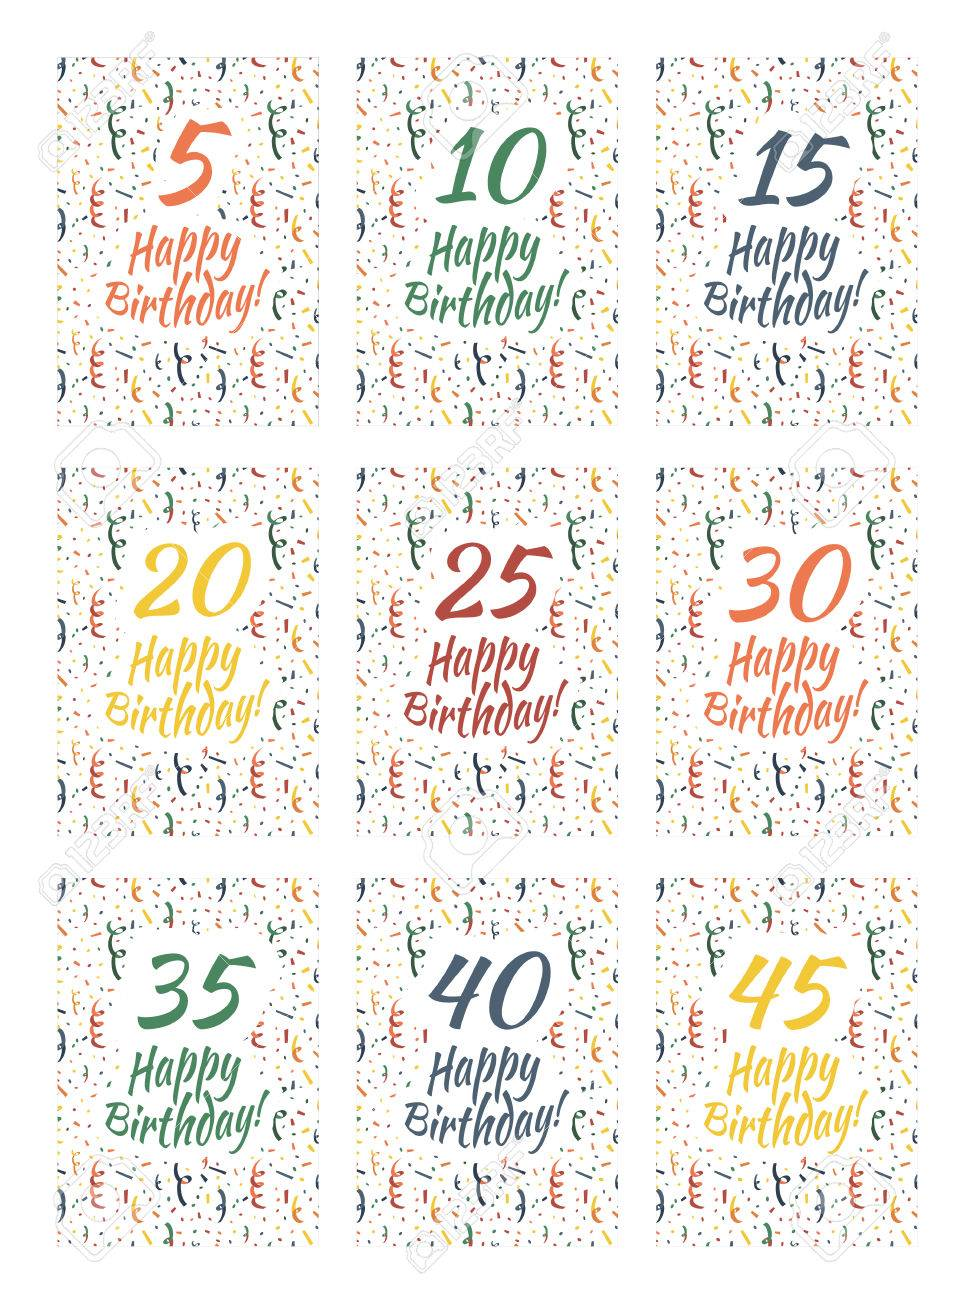 set of happy birthday card covers for anniversary royalty free